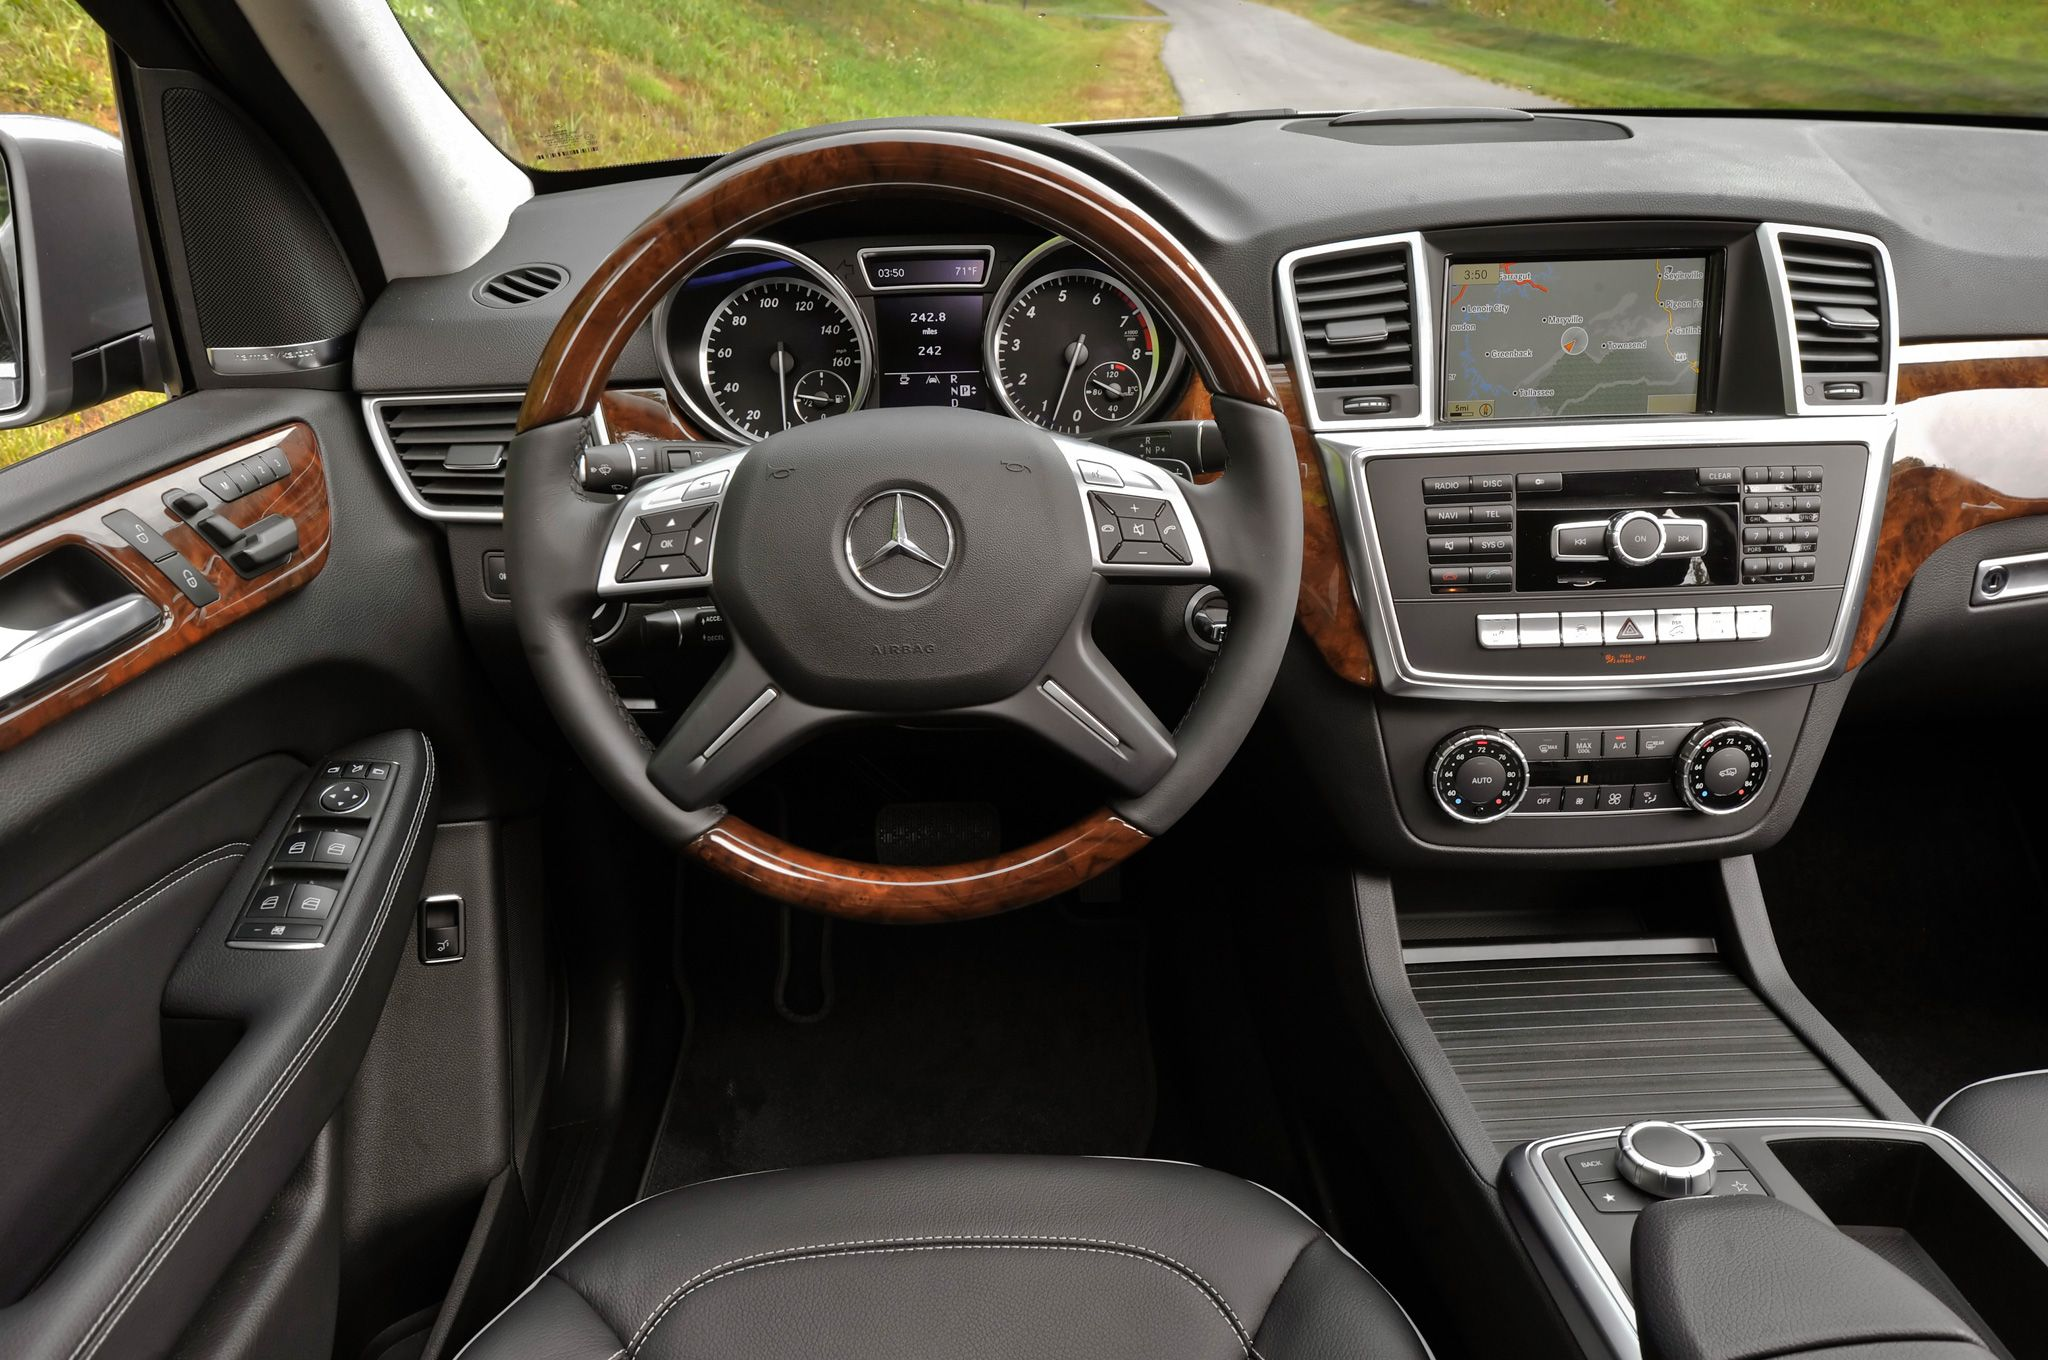 2017 Mercedes Benz Ml350 4matic Interior Photo 2